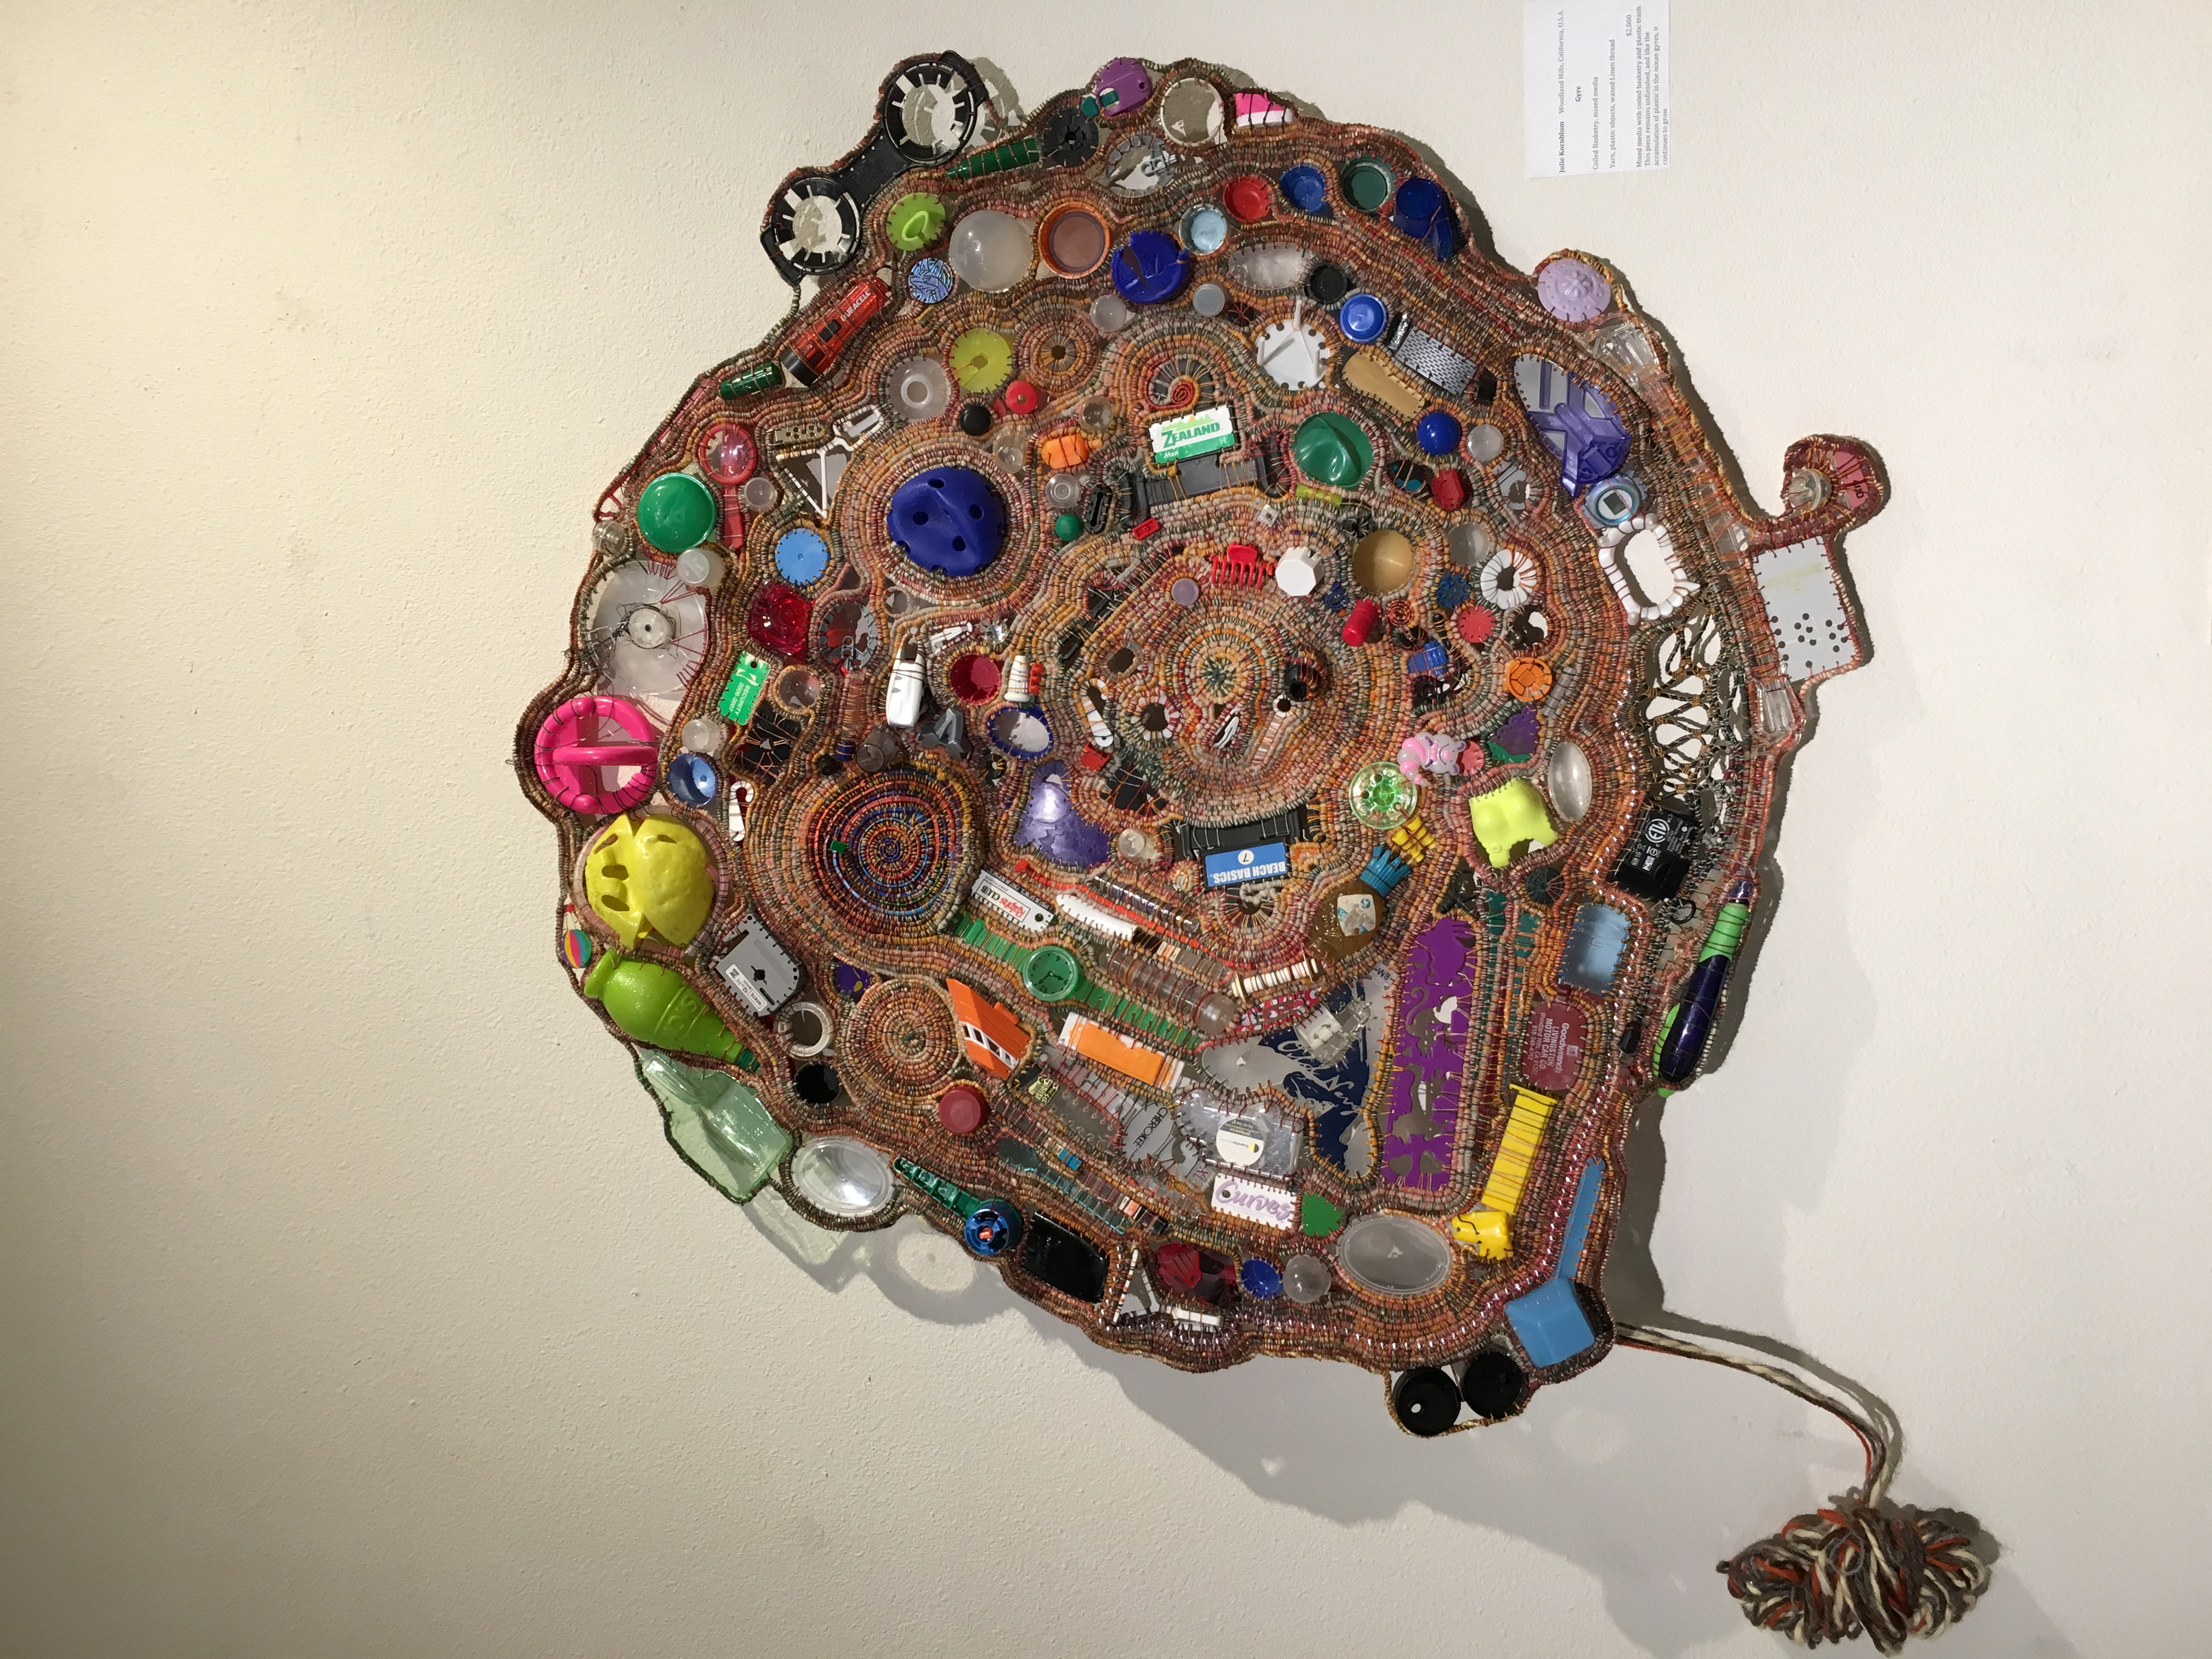 Making Art With Recycled Materials